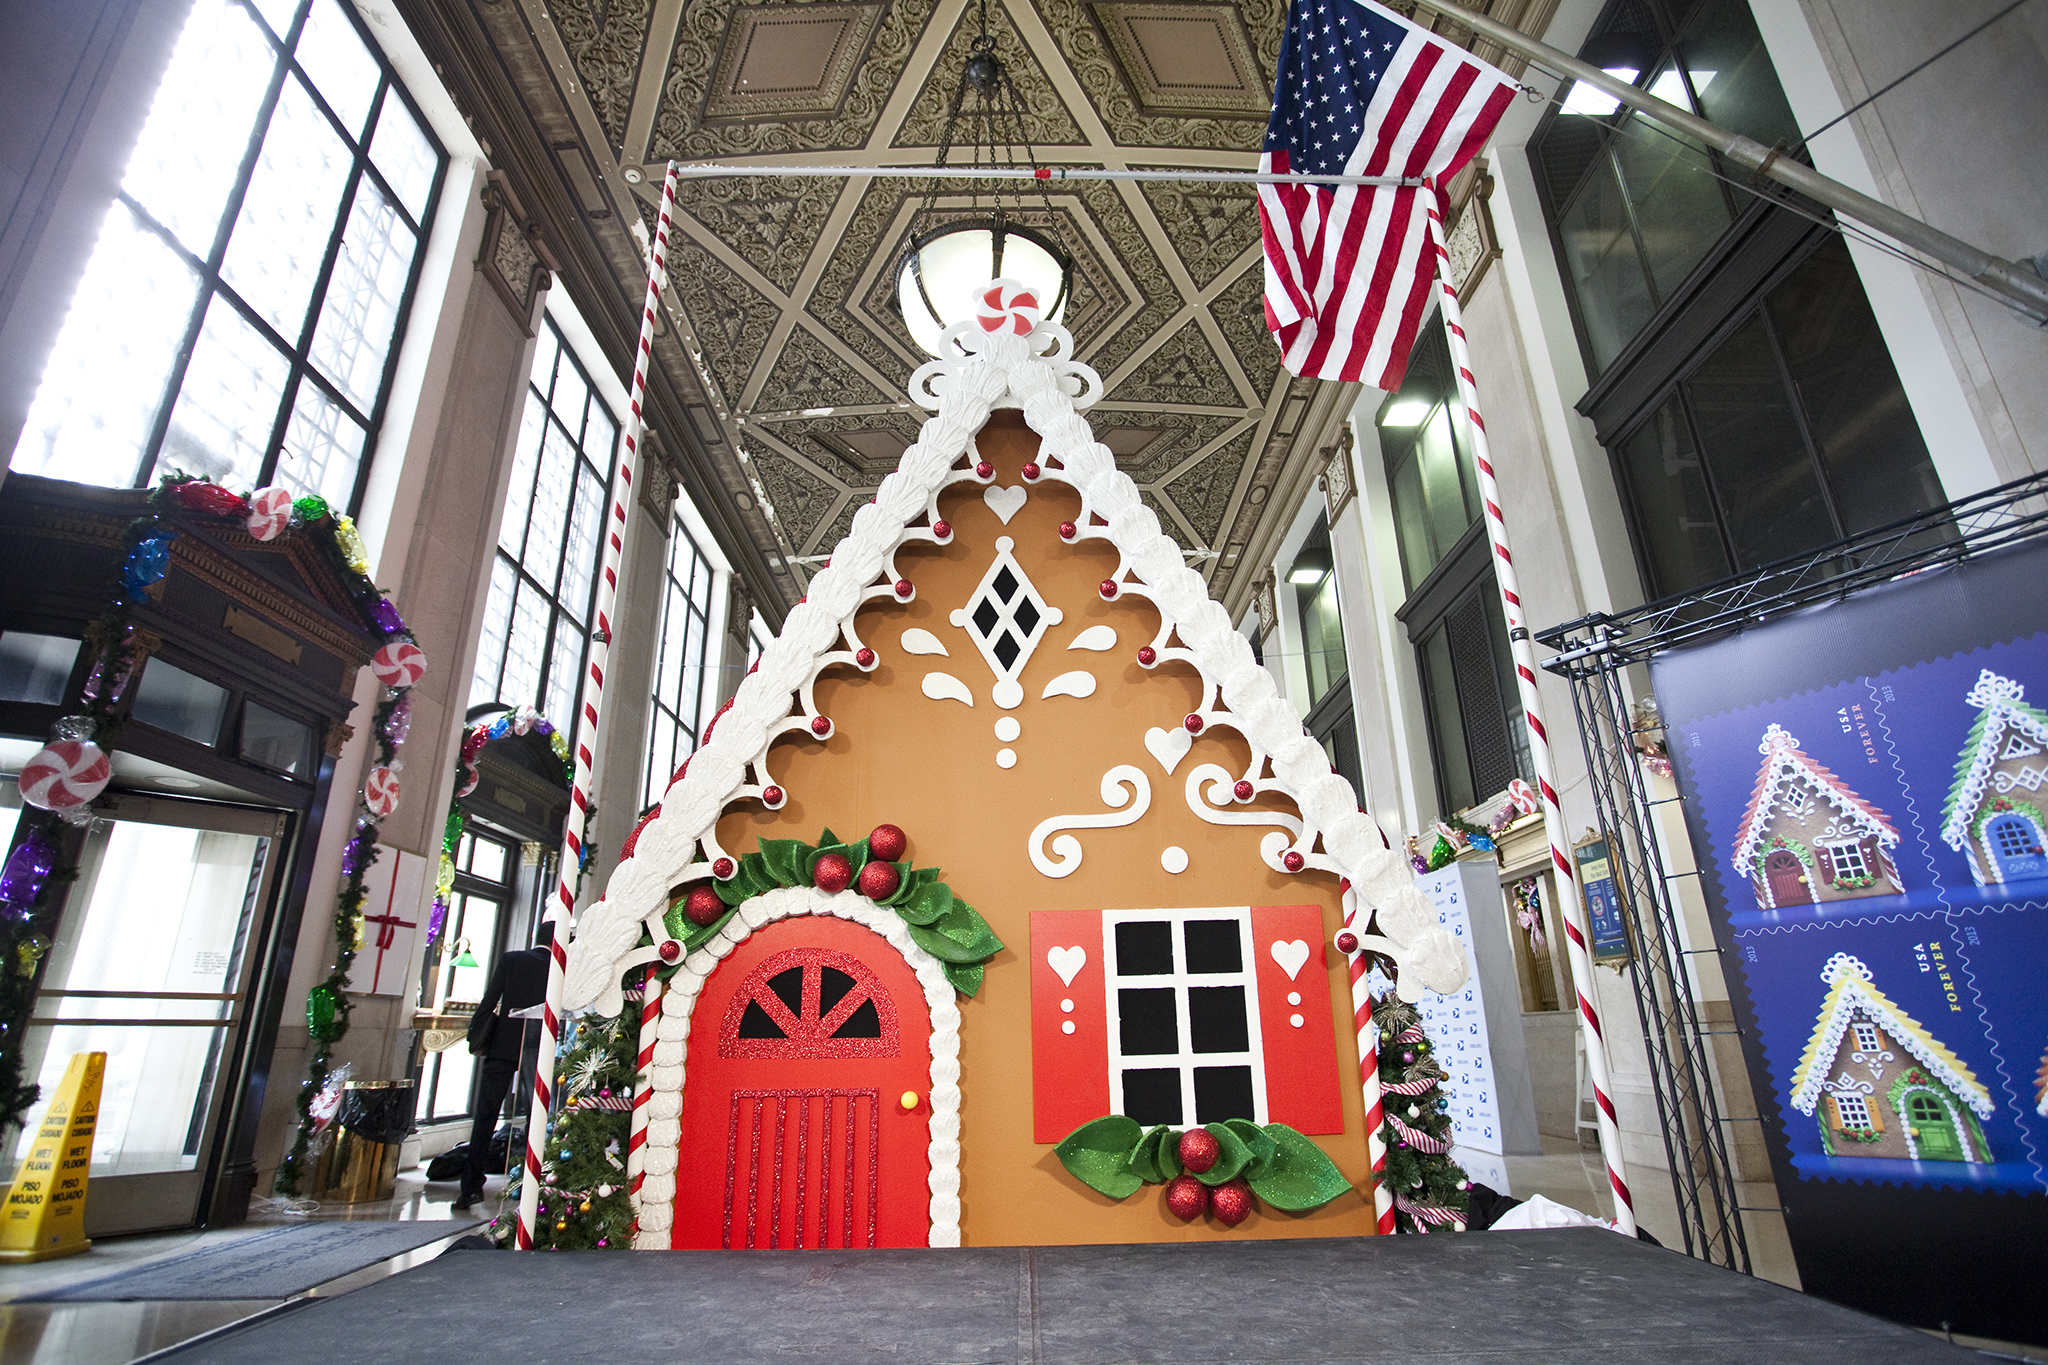 Gingerbread House at James A. Farley Post Office Building